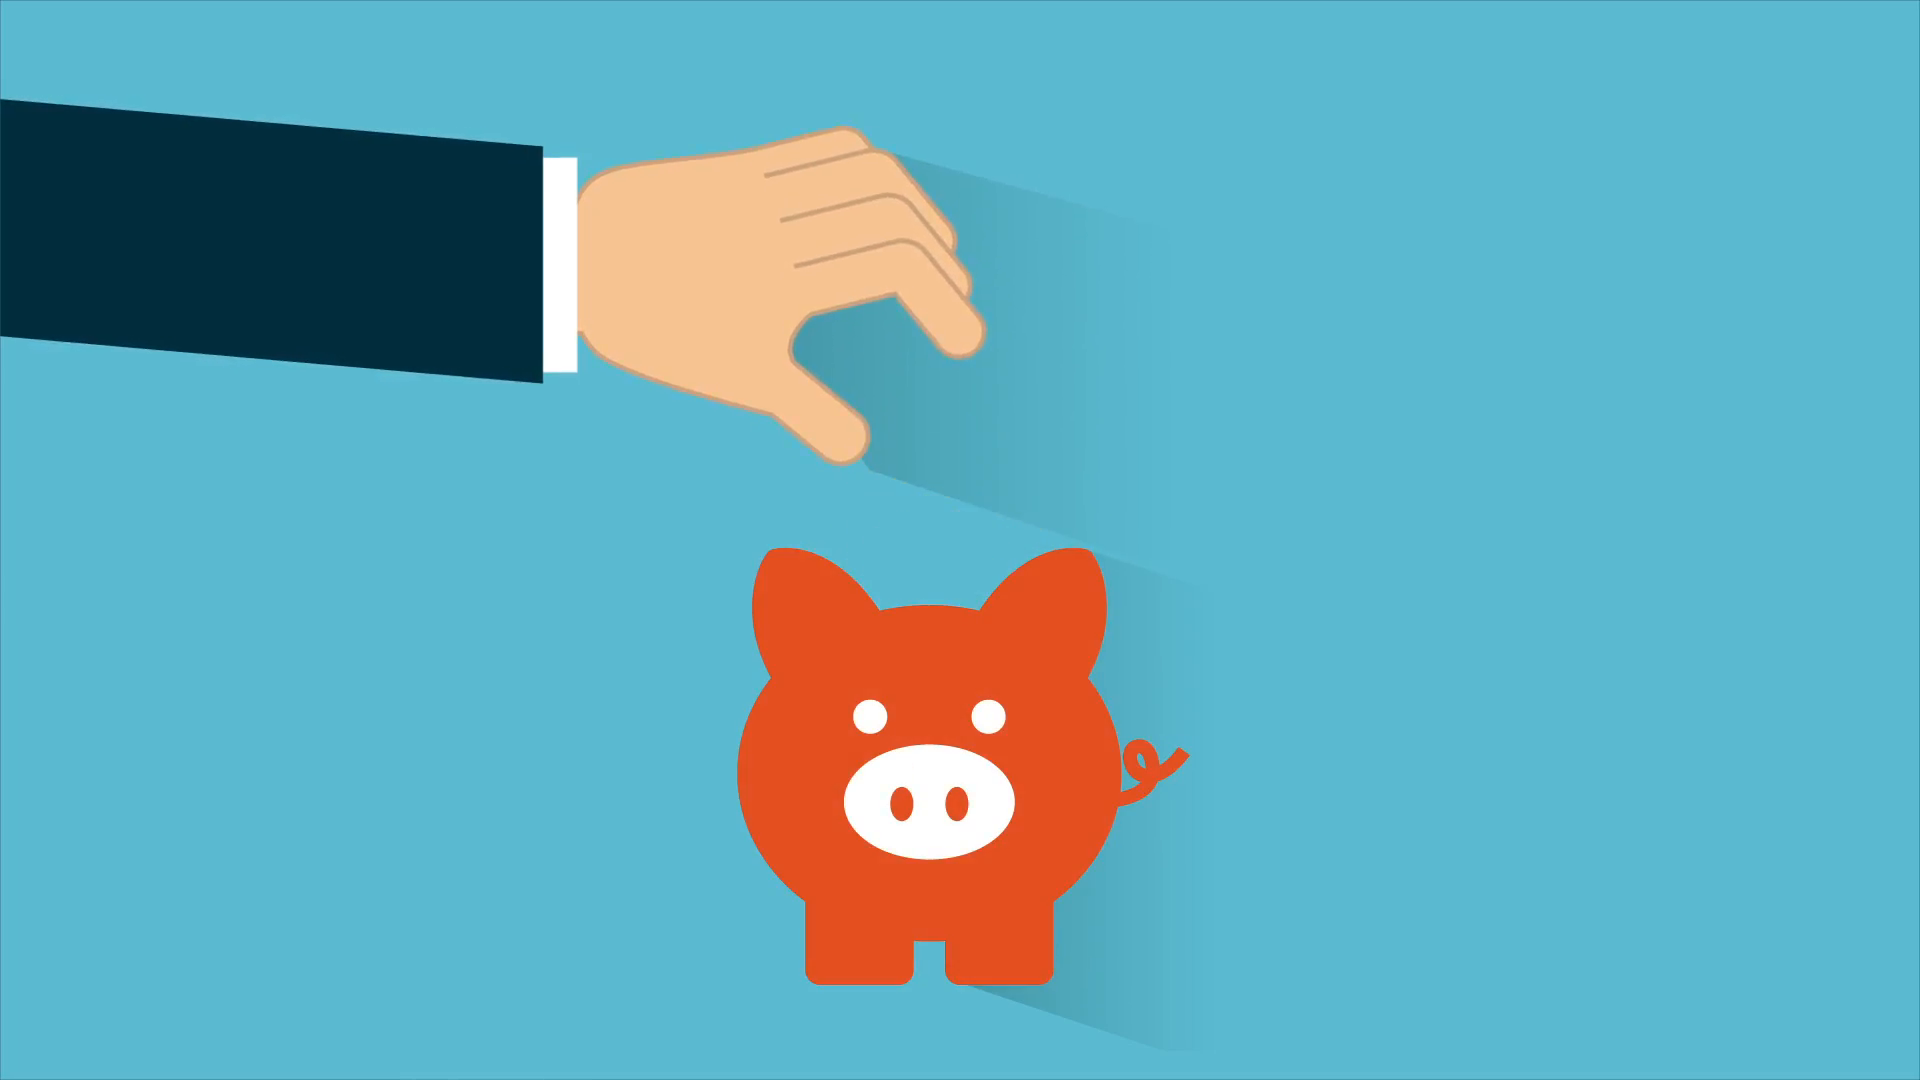 Bank clipart animated. Piggy video animation stock